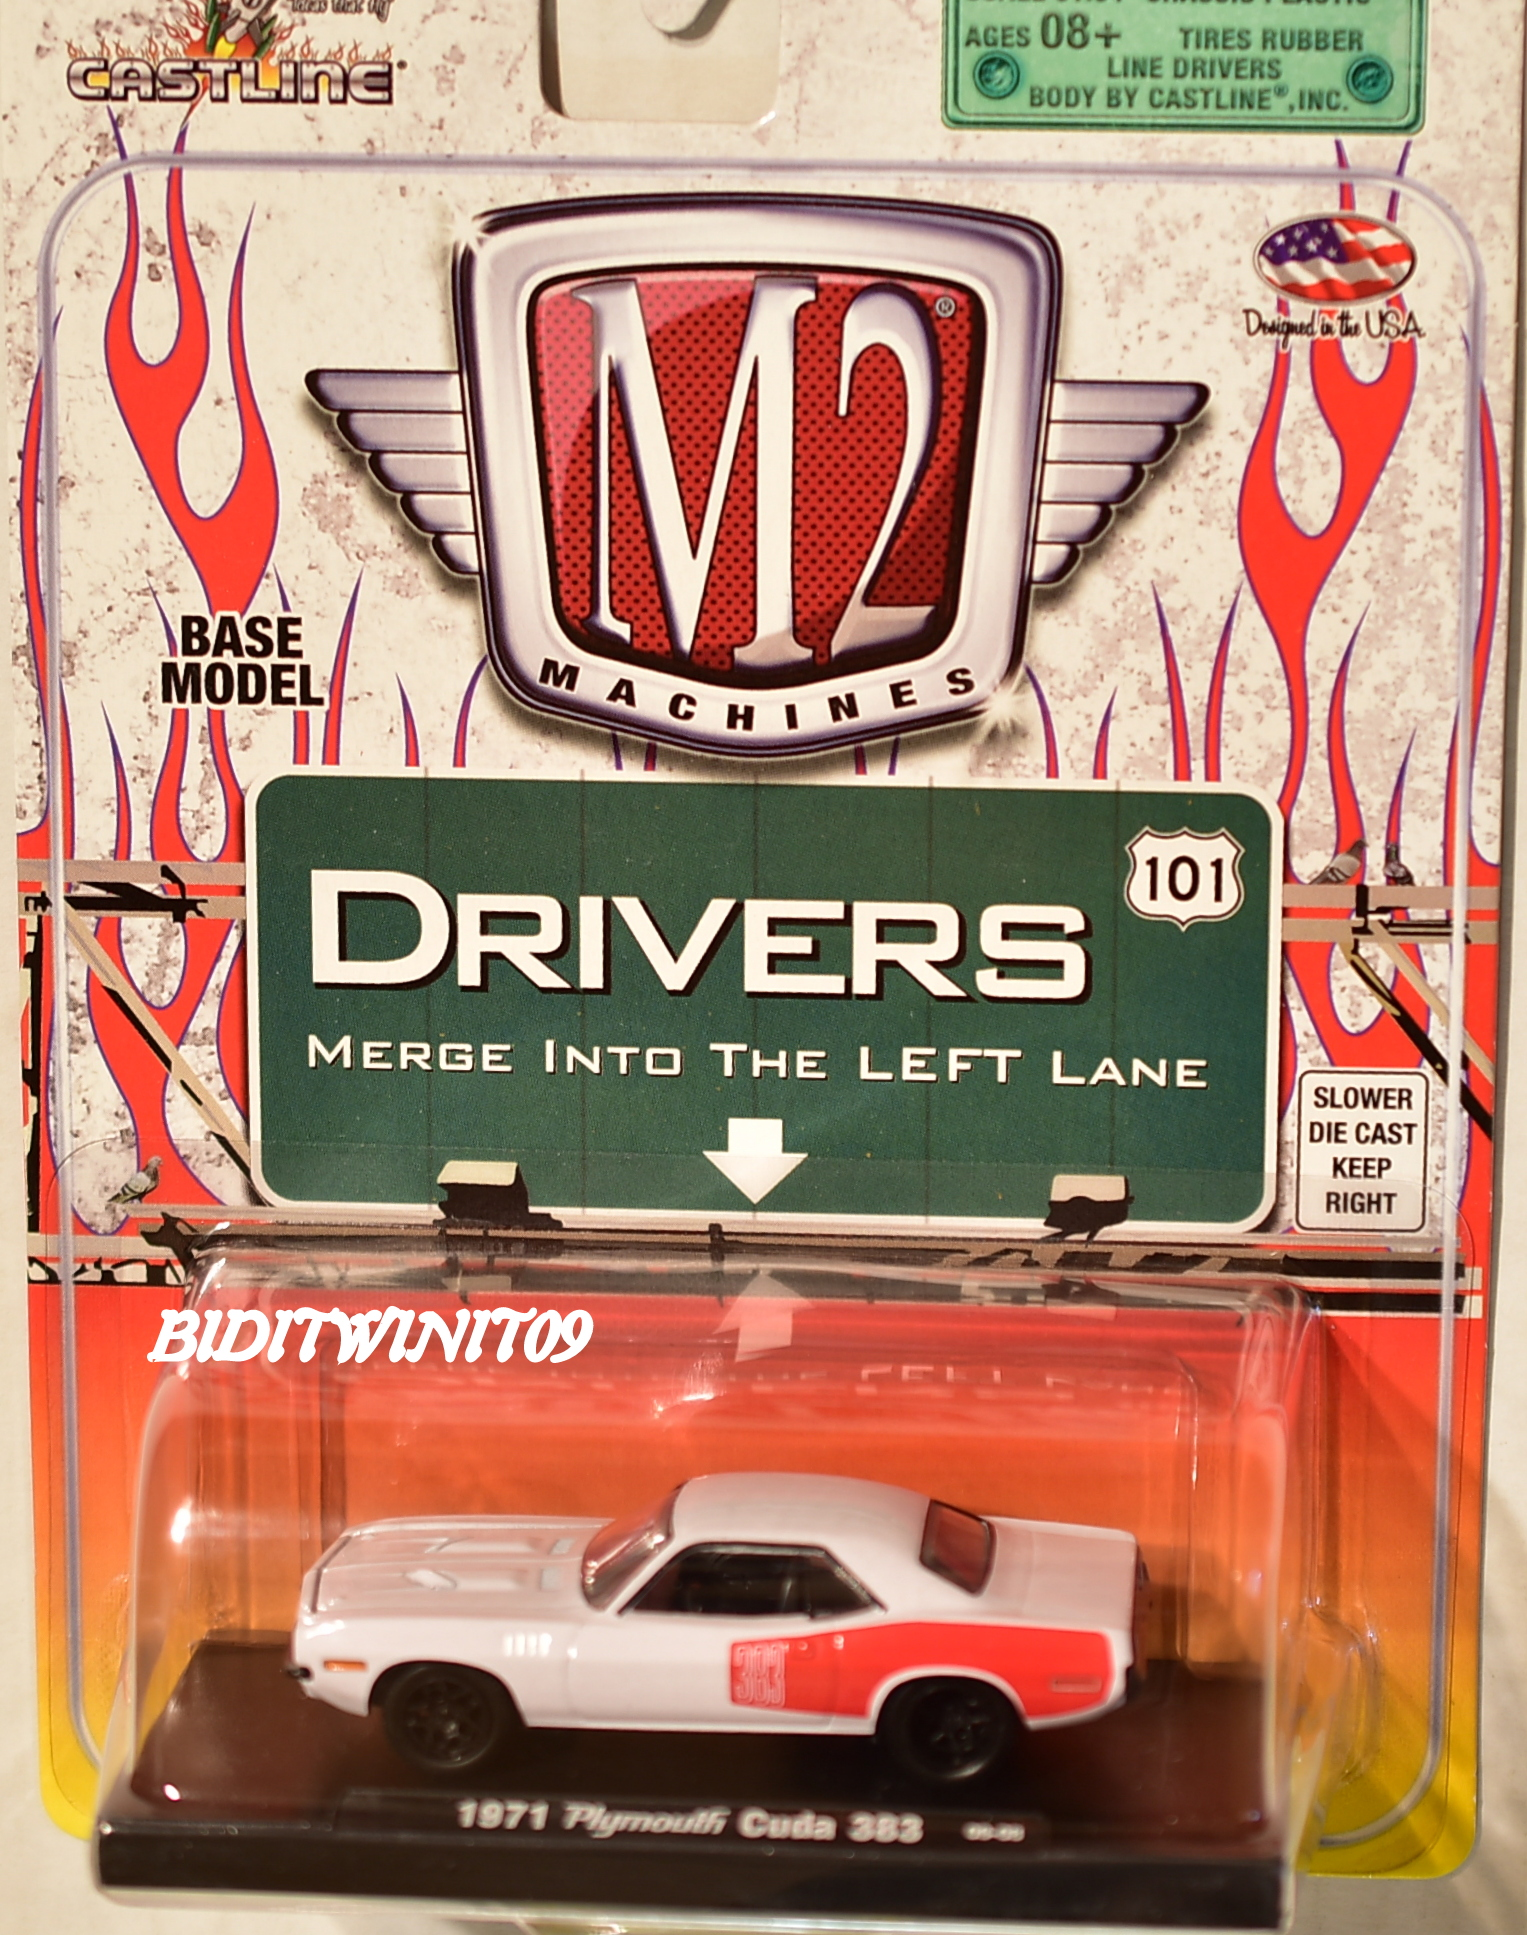 M2 MACHINES AUTO-DRIVERS 1971 PLYMOUTH CUDA 383 09-08 WHITE E+